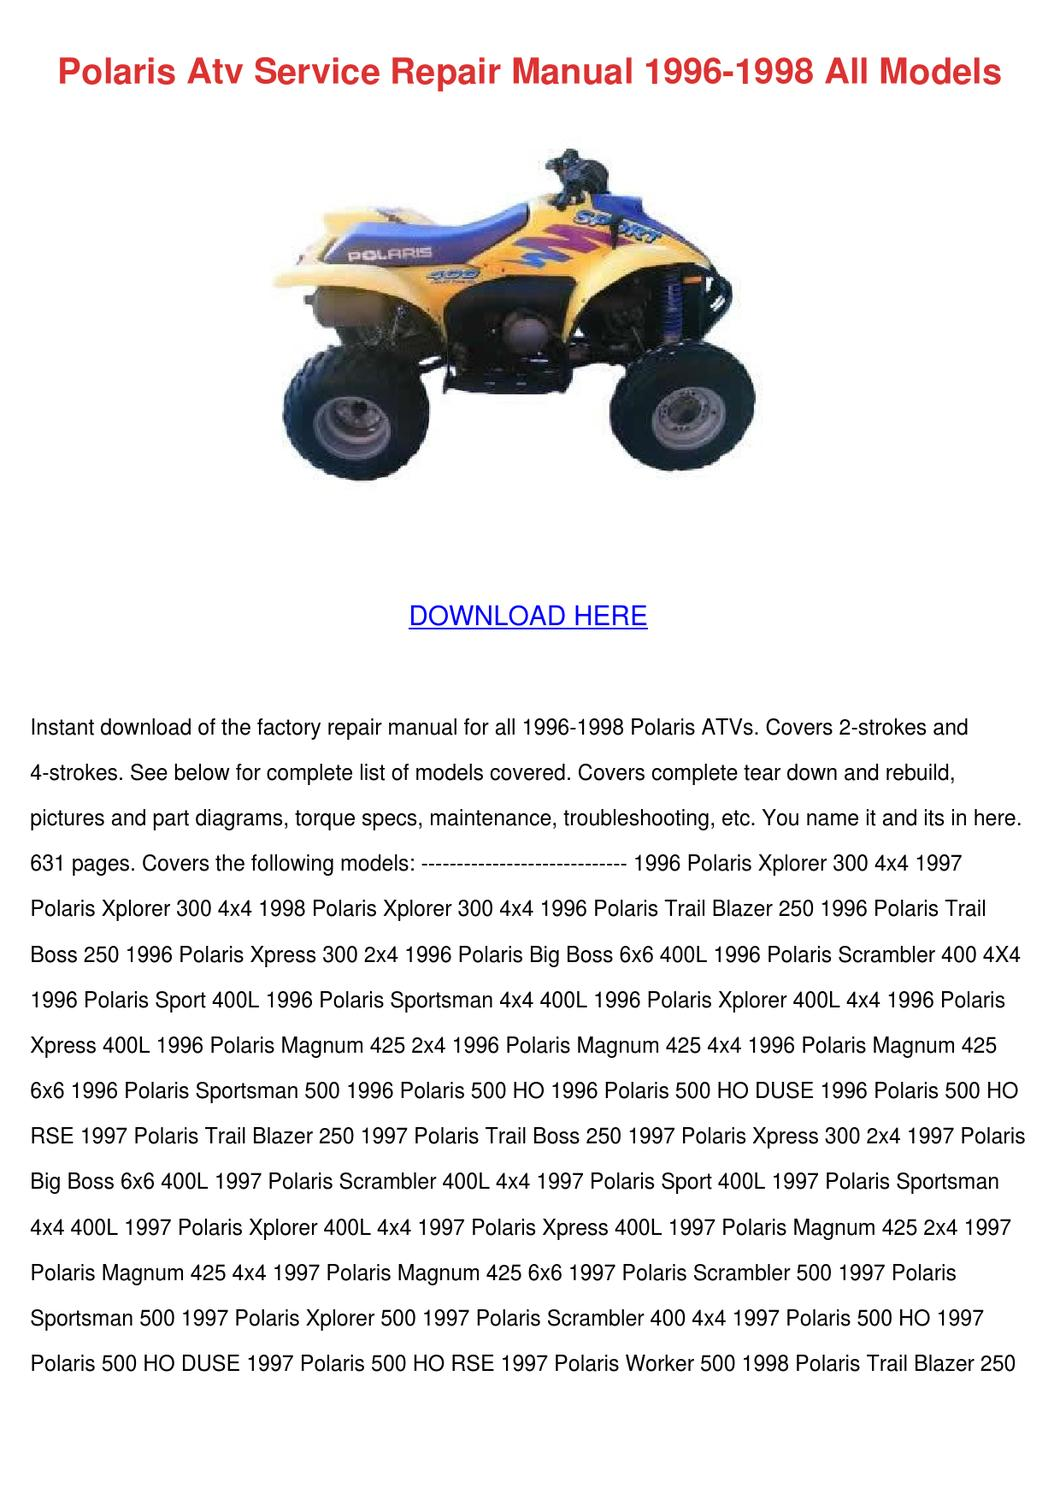 Polaris Atv Service Repair Manual 1996 1998 A By Julieta Annala Issuu